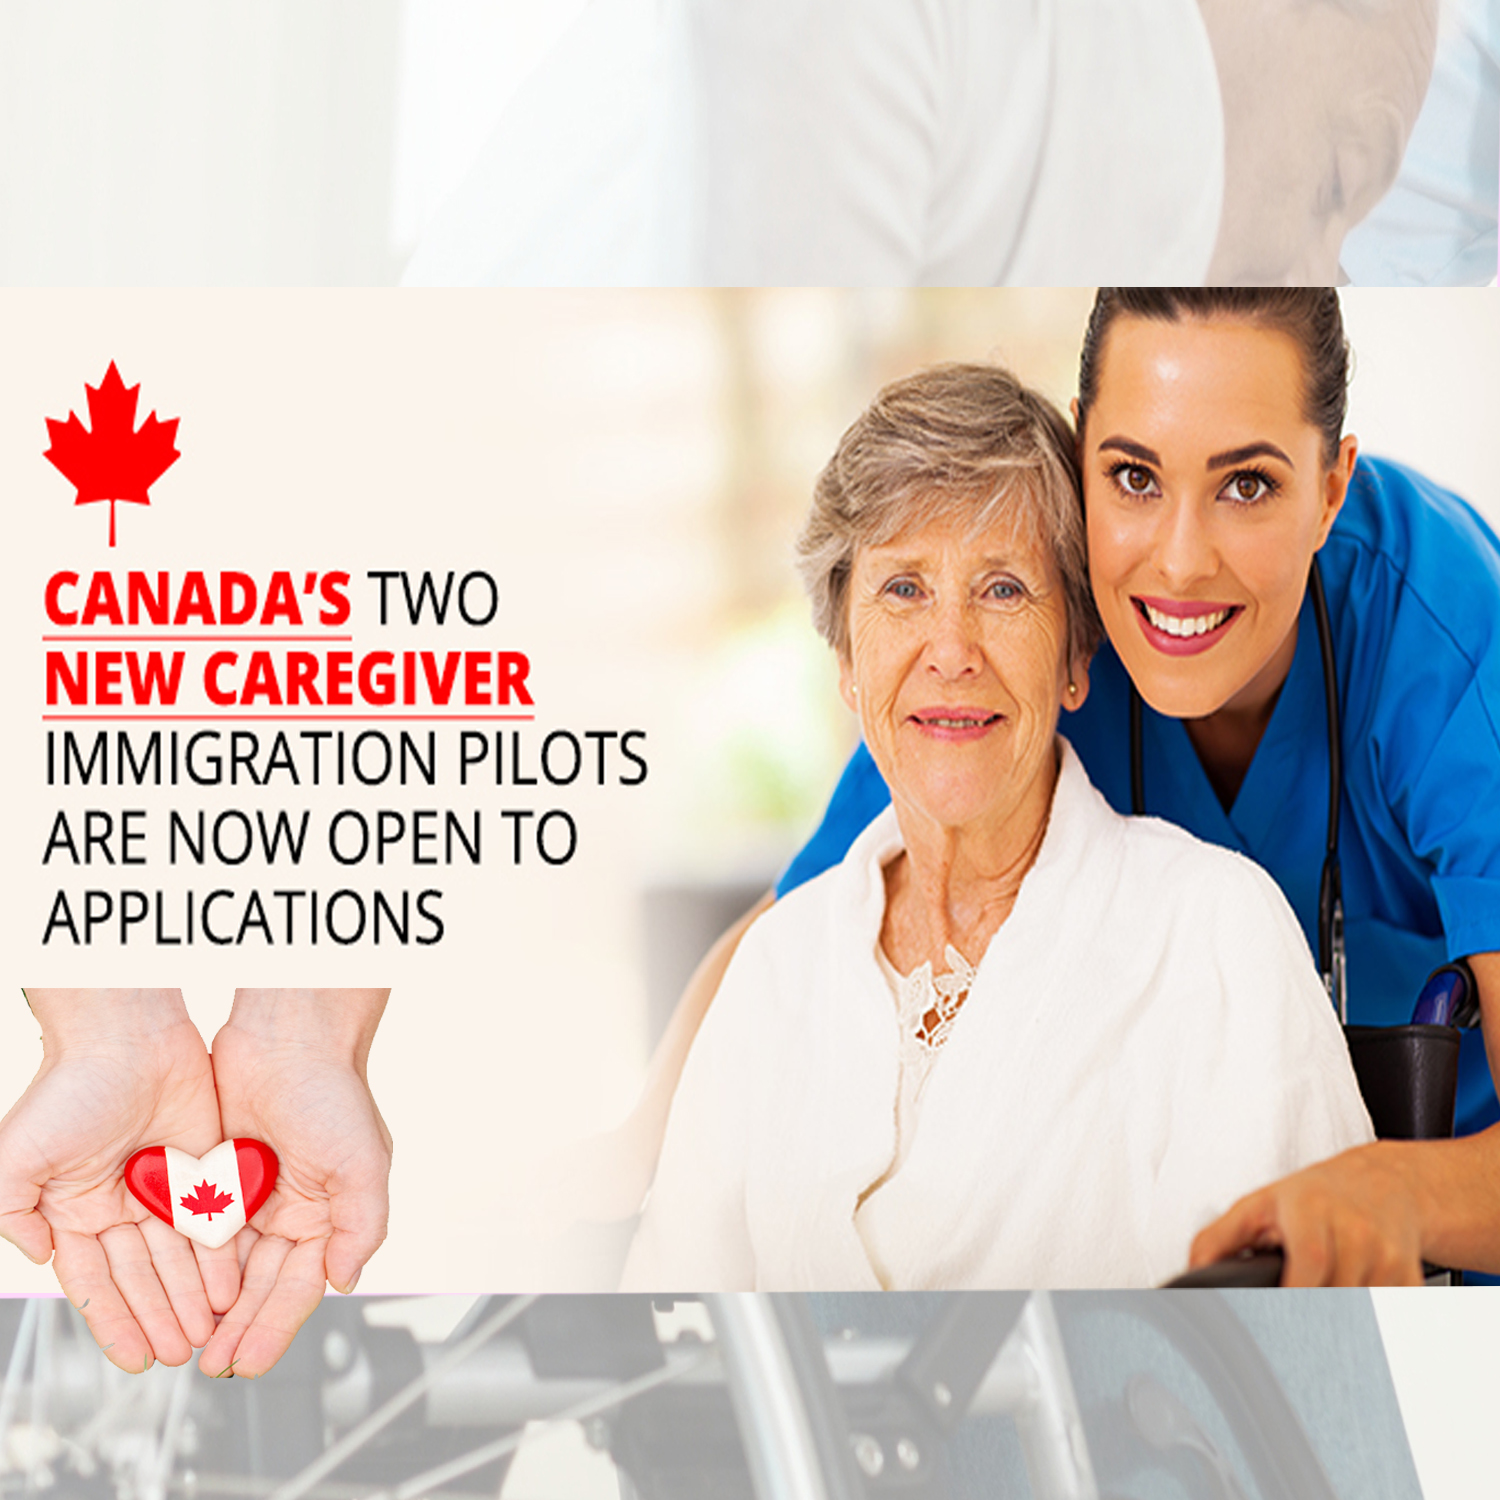 Immigration Pilot for Caregivers